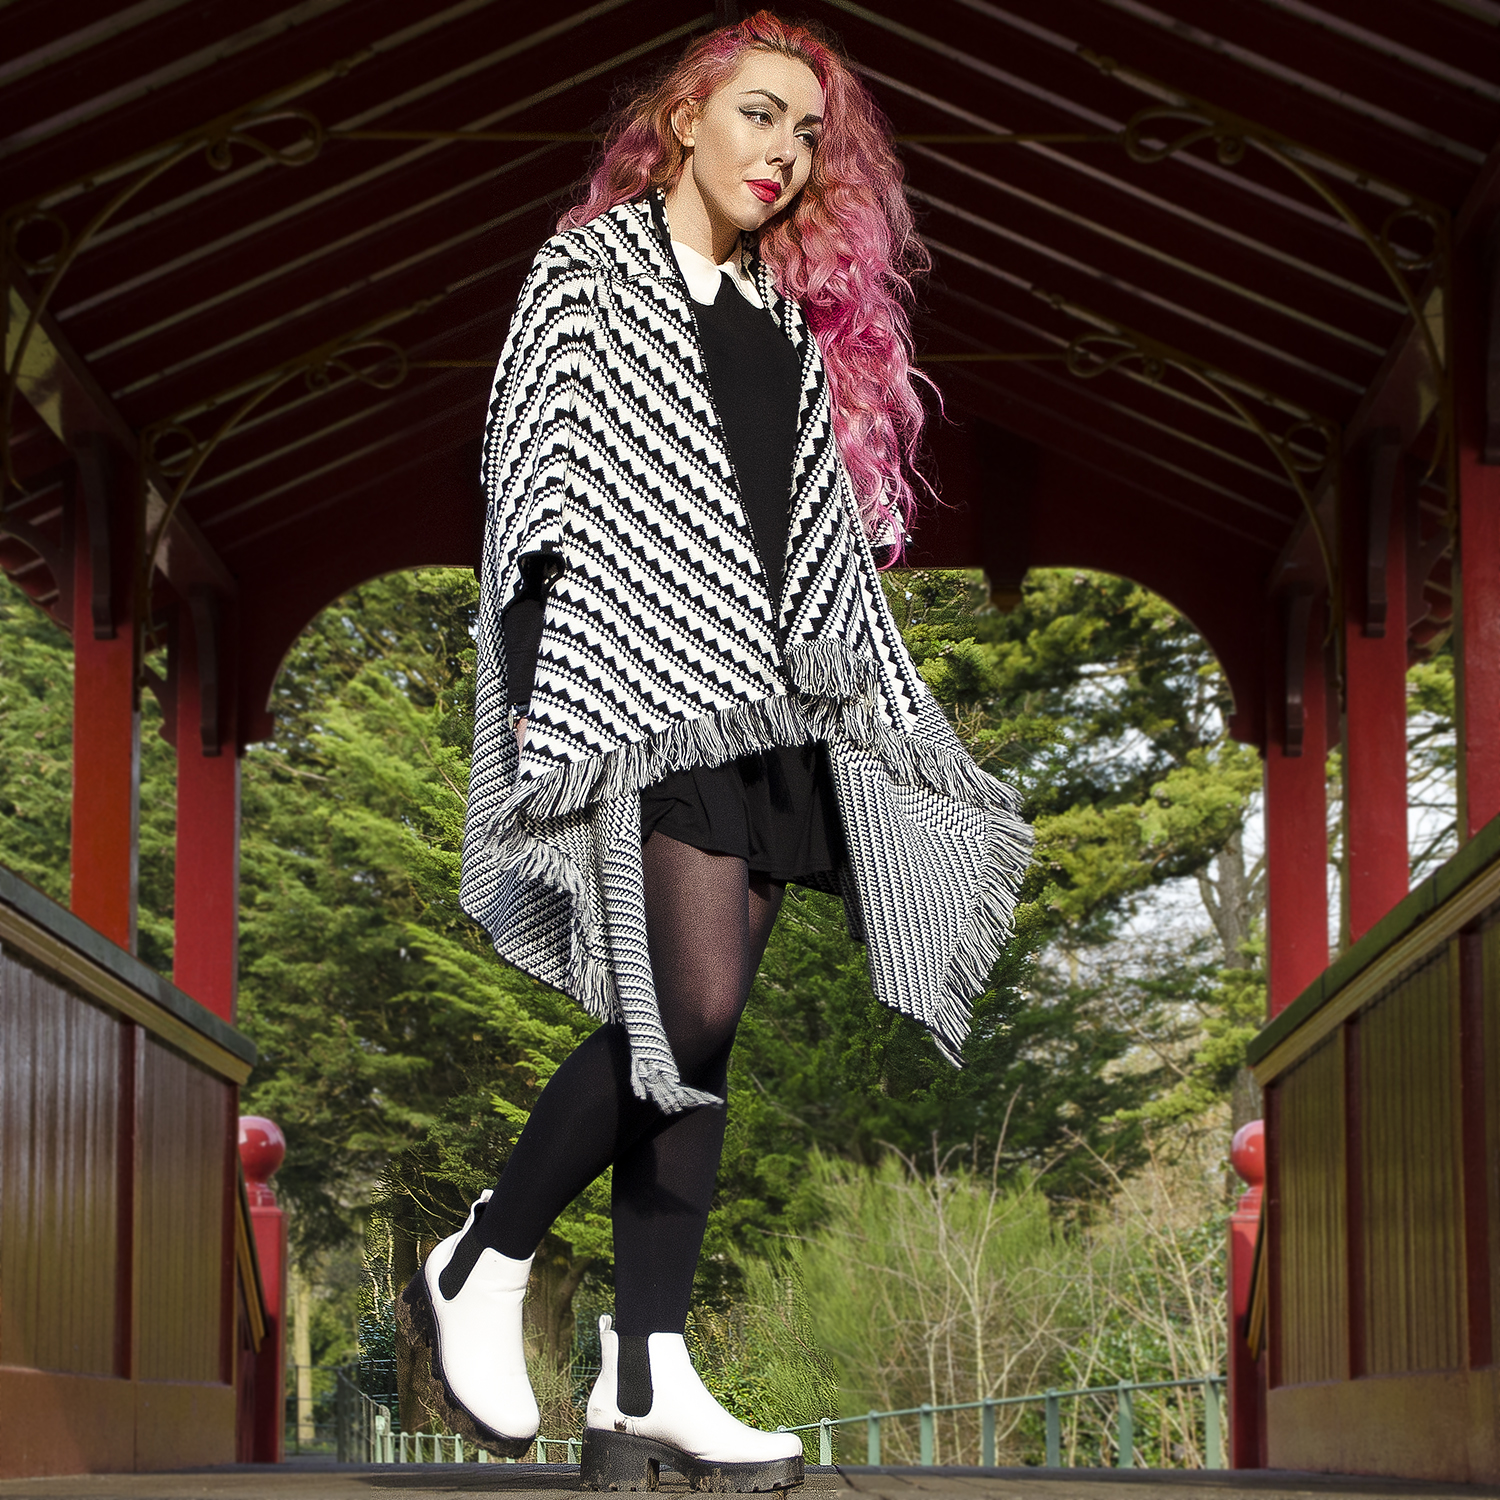 Stephi LaReine pink curly hair liverpool fashion blogger, chelsea boots, monochrome cape